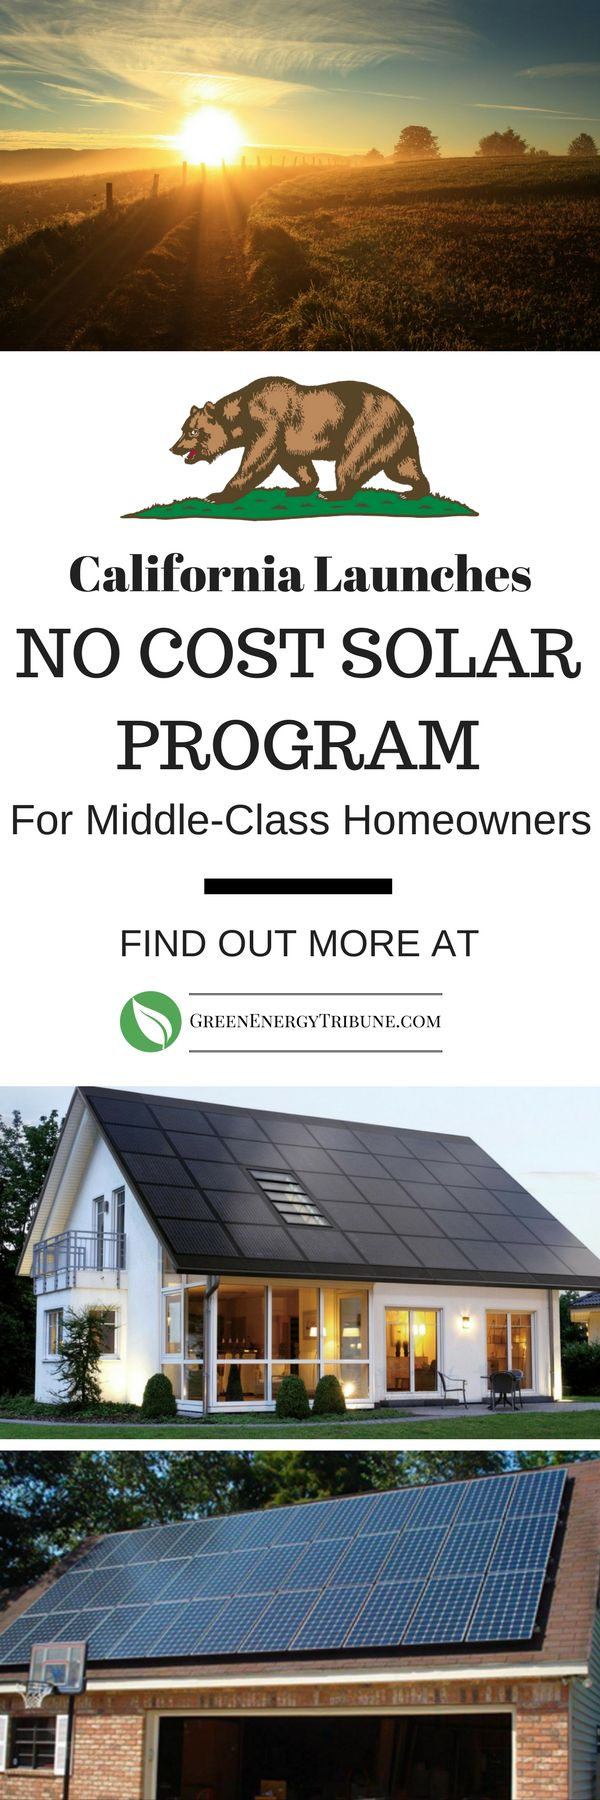 25 best ideas about solar panels on roof on pinterest - Cost of solar panels for 3 bedroom house ...